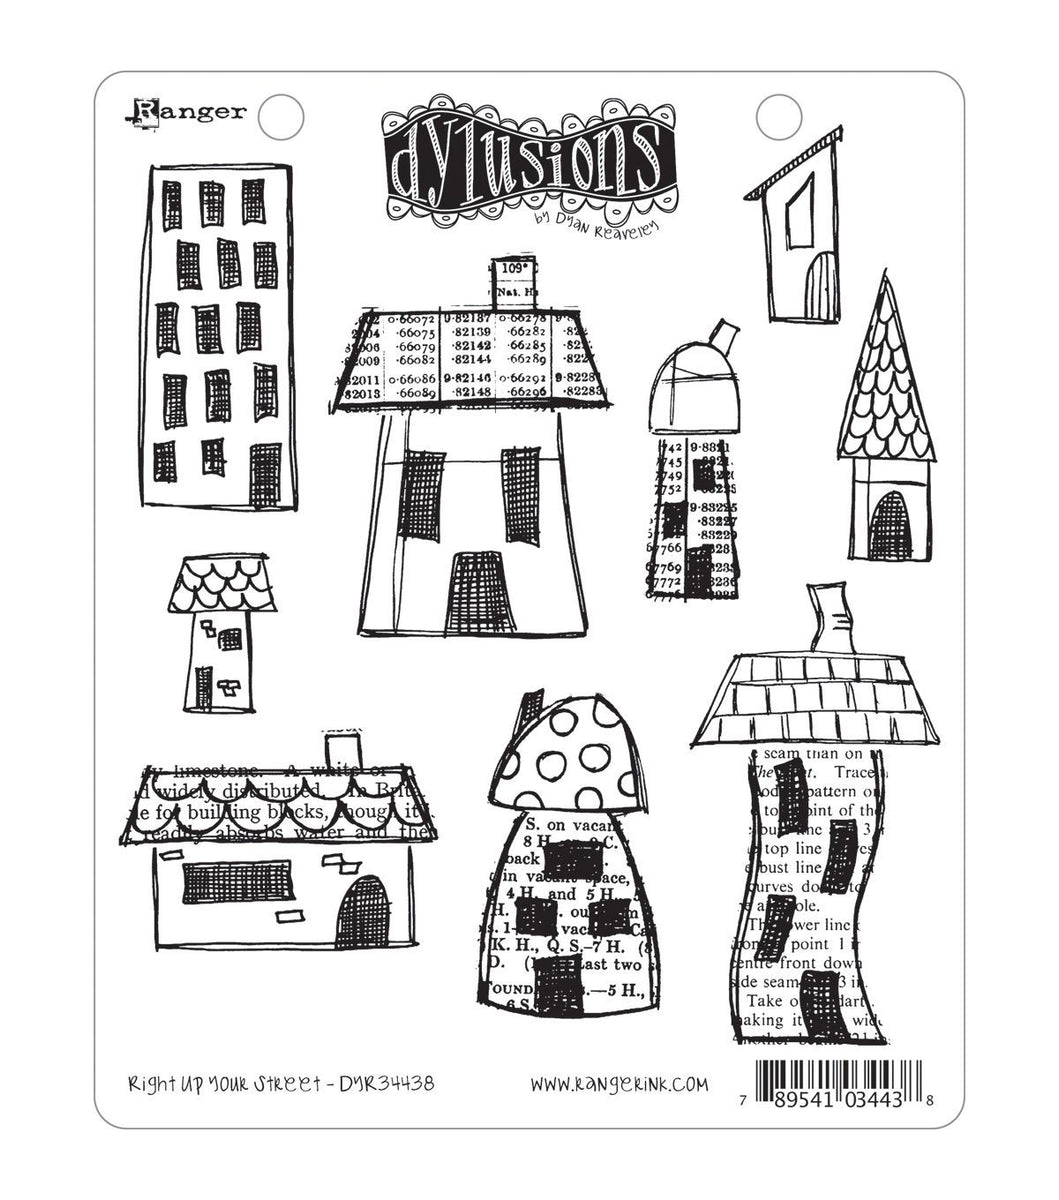 Dylusions Cling Stamp - Right up your street